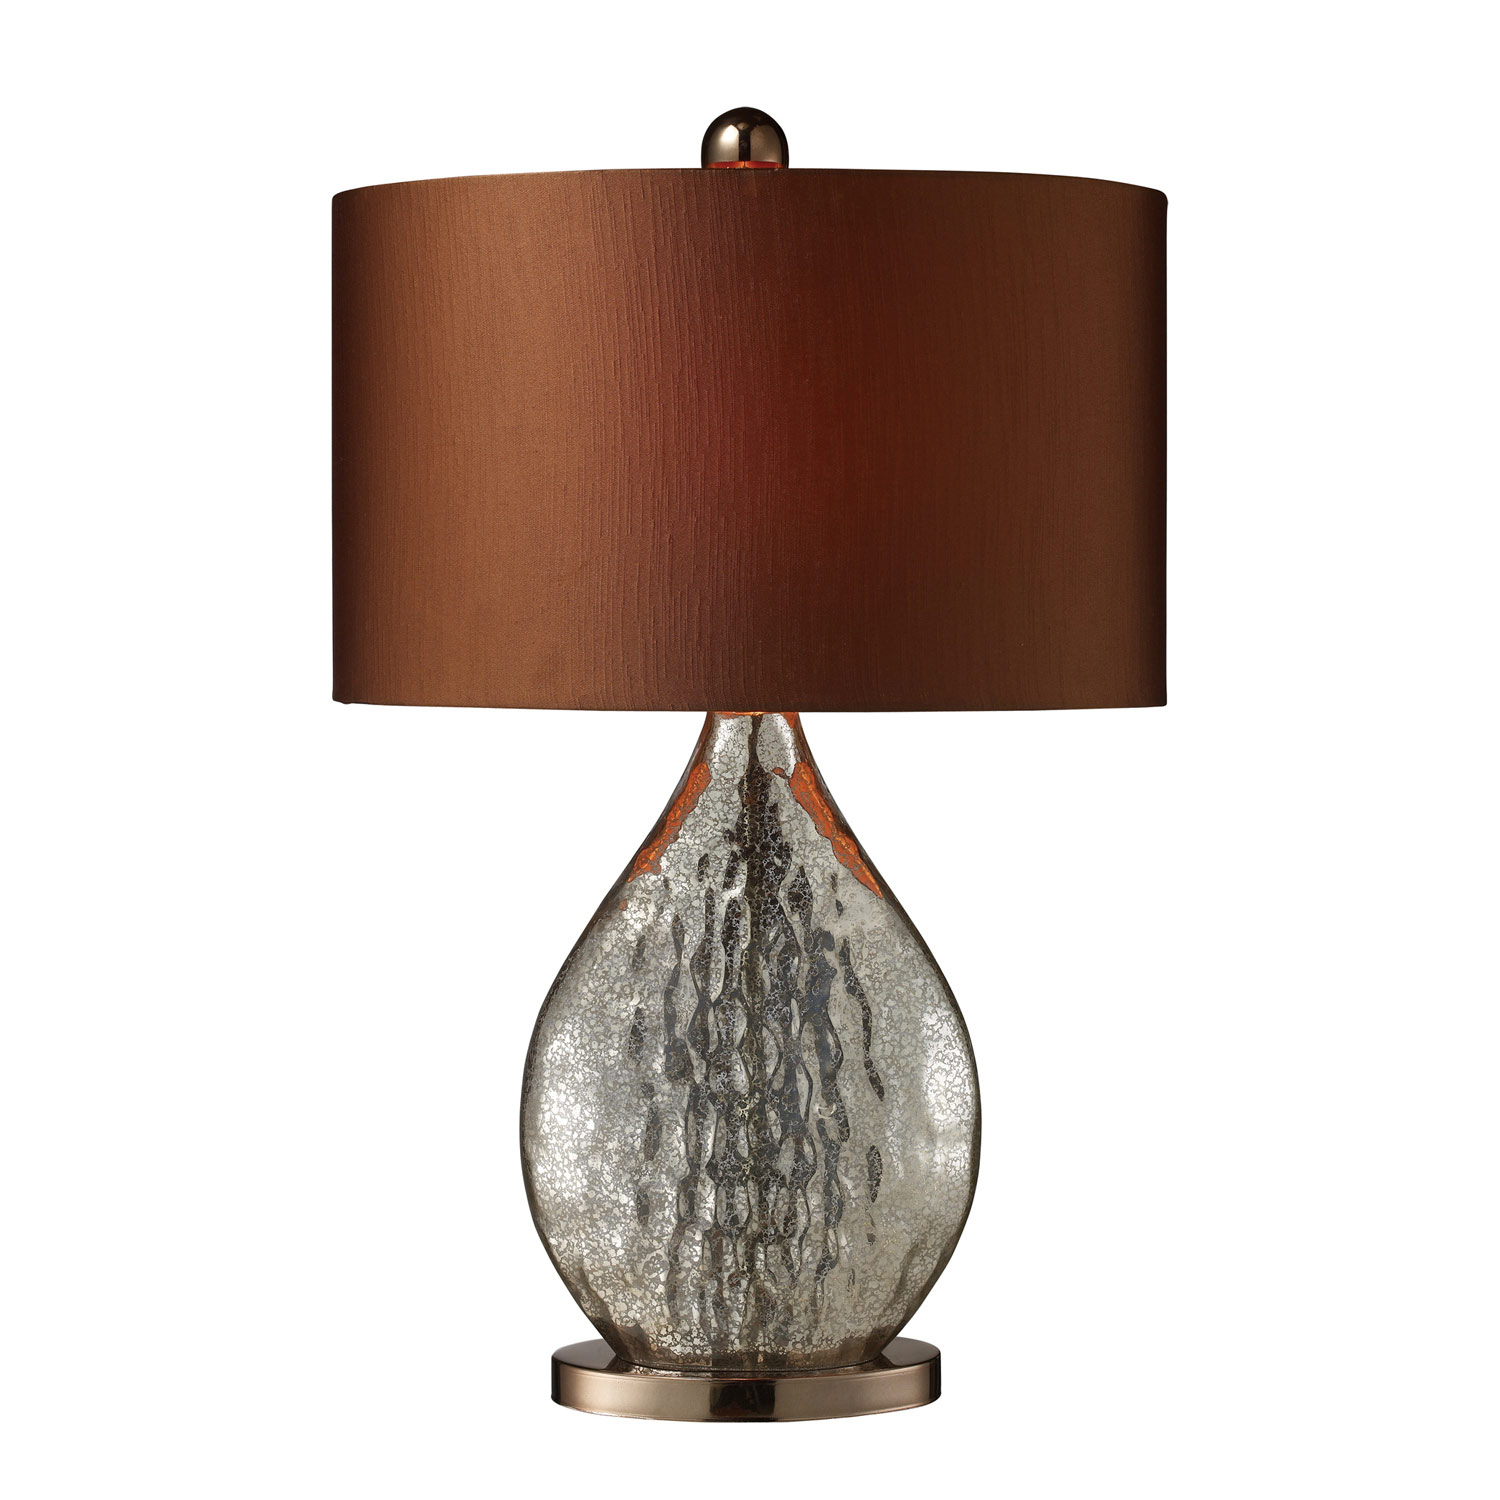 Elk Lighting D1889 Sovereign Table Lamp - Antique Mercury Glass with Coffee Plating